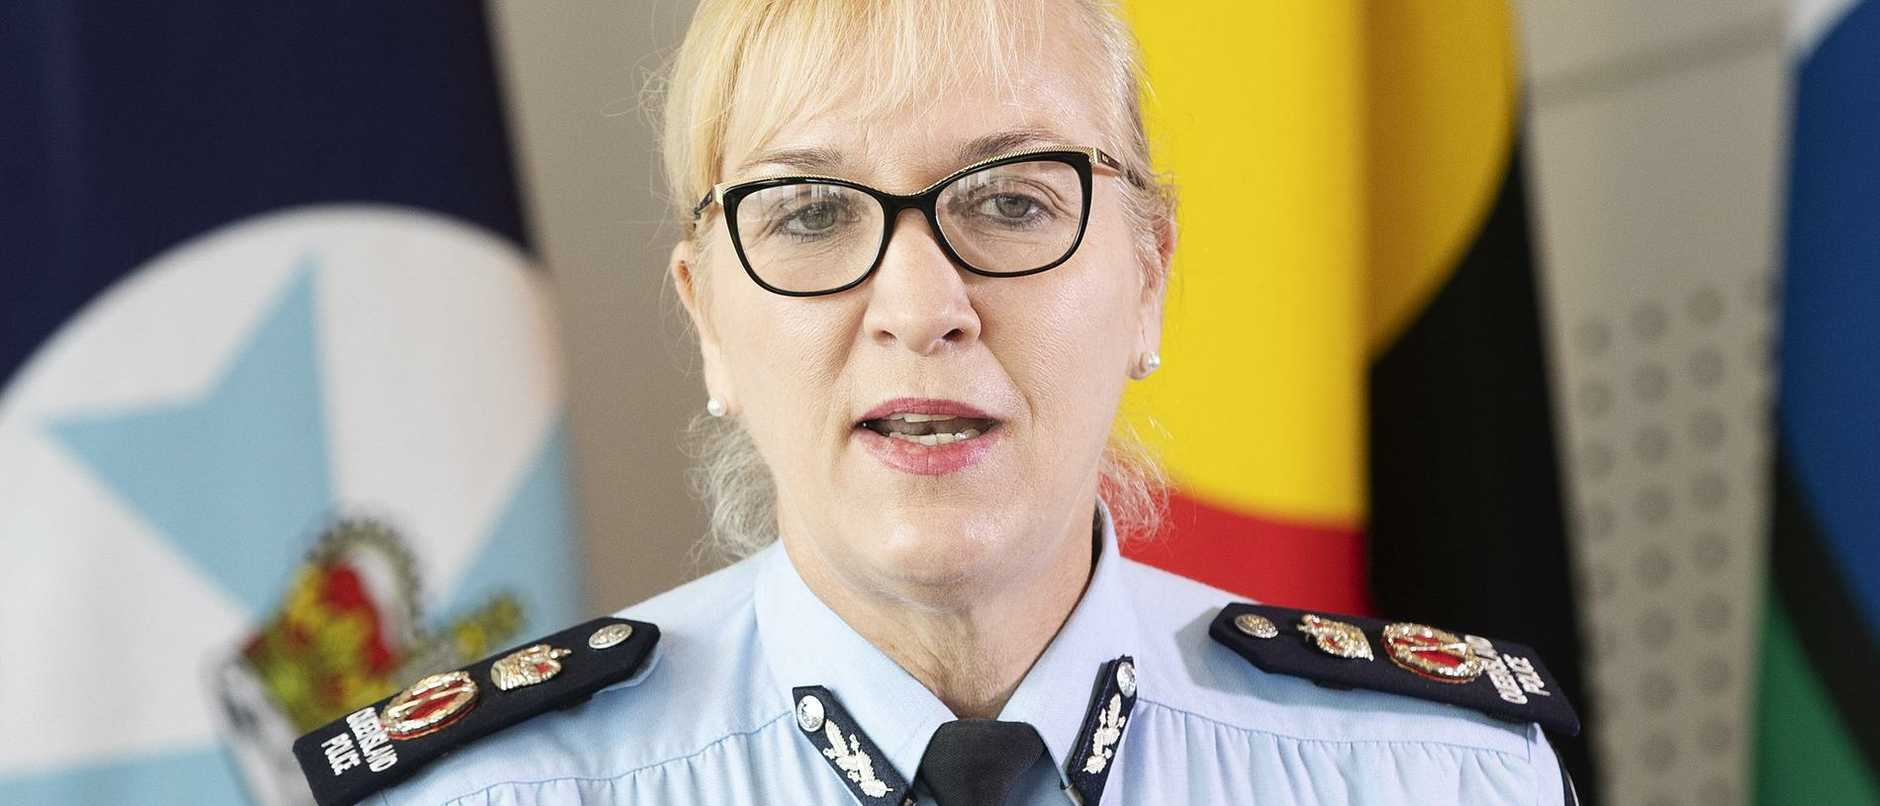 Police Commissioner has confirmed the teen charged over the Alexandra Hills tragedy was on bail for a 'traffic matter' he would not have been remanded for.